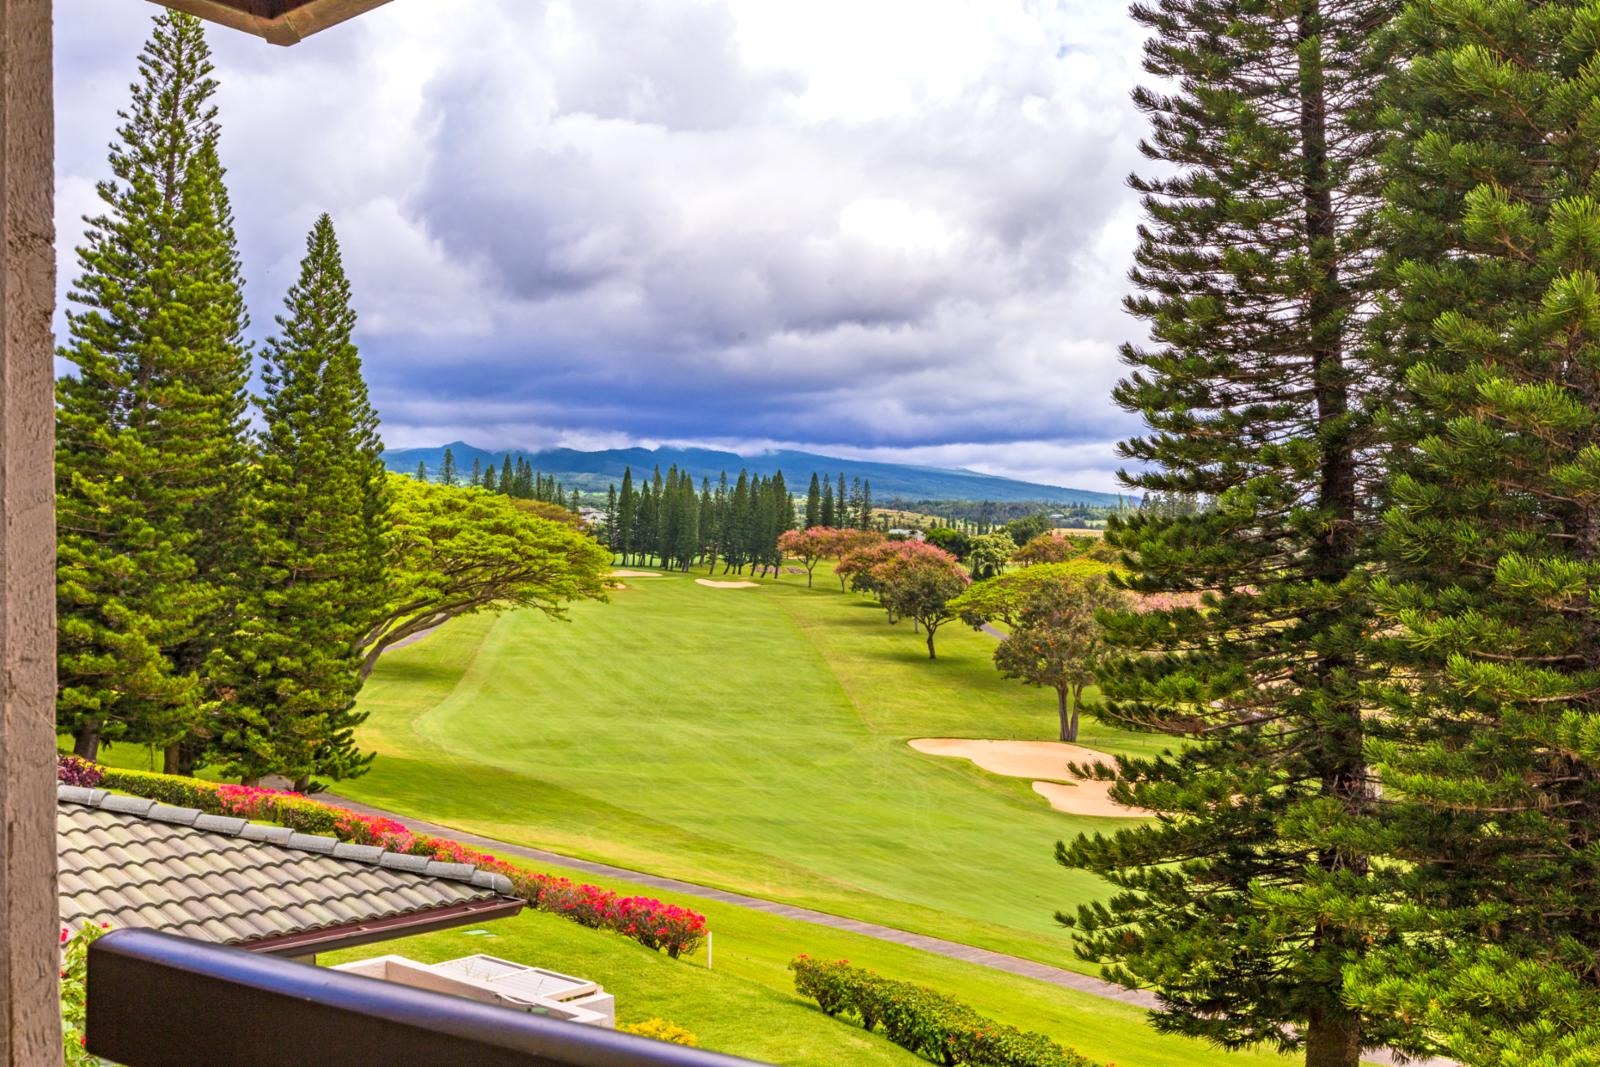 Walking distance to Kapalua Bay and Kapalua Coastal Trail